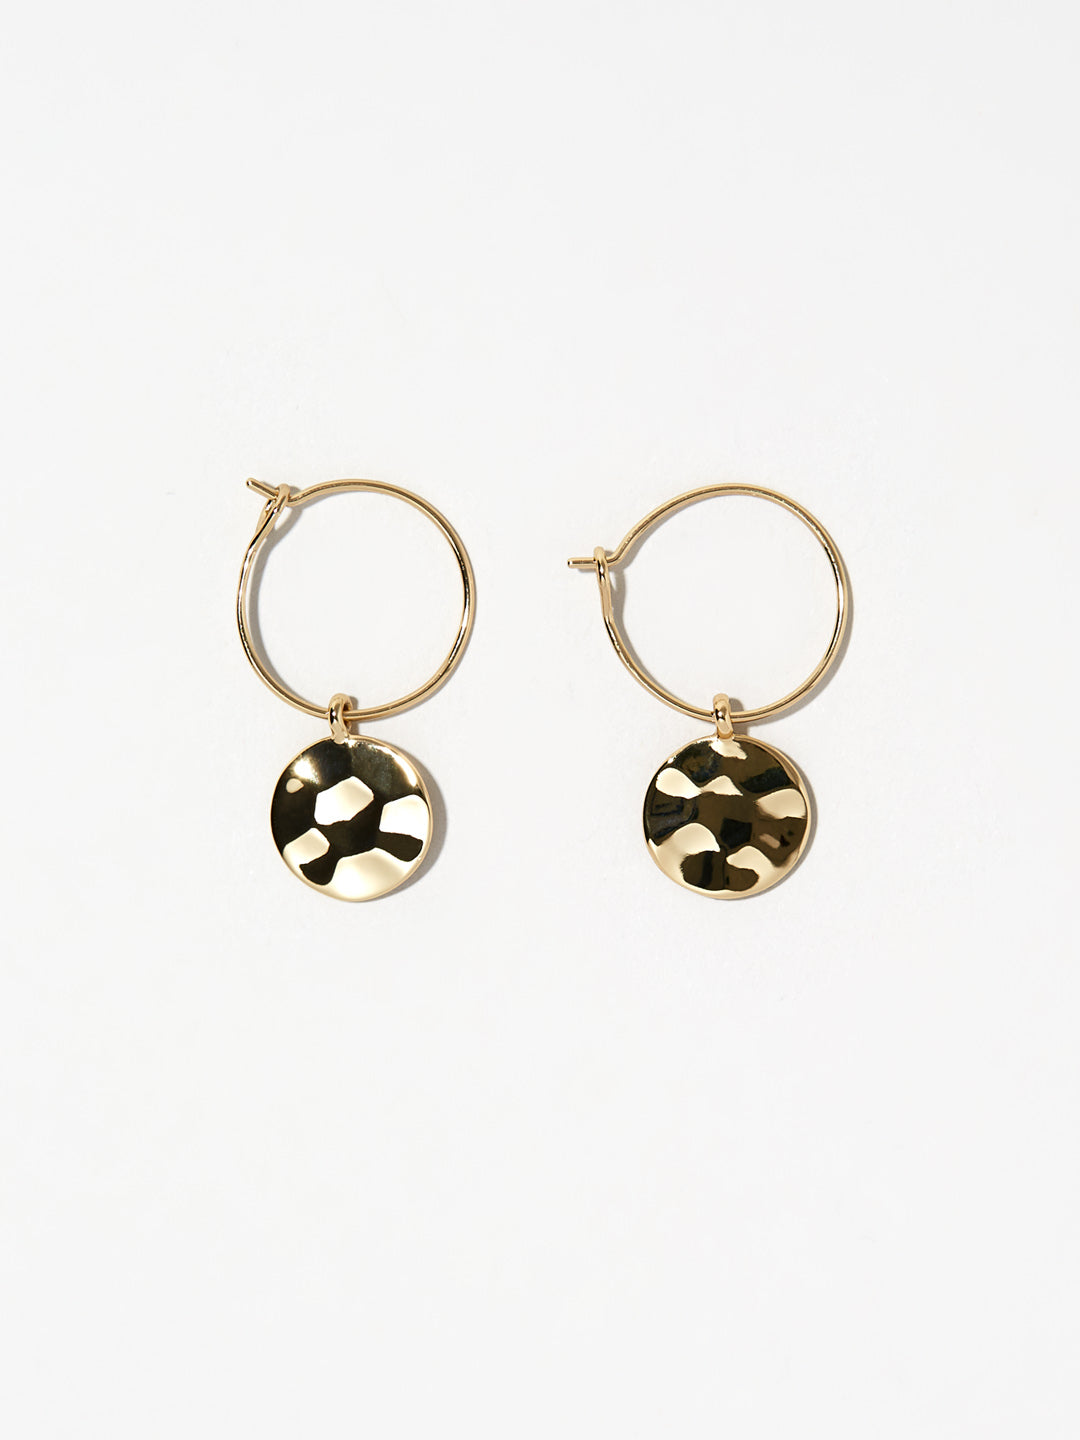 Ana Luisa Earrings Hoop Earrings Tiny Hoop Earrings Georgia Gold